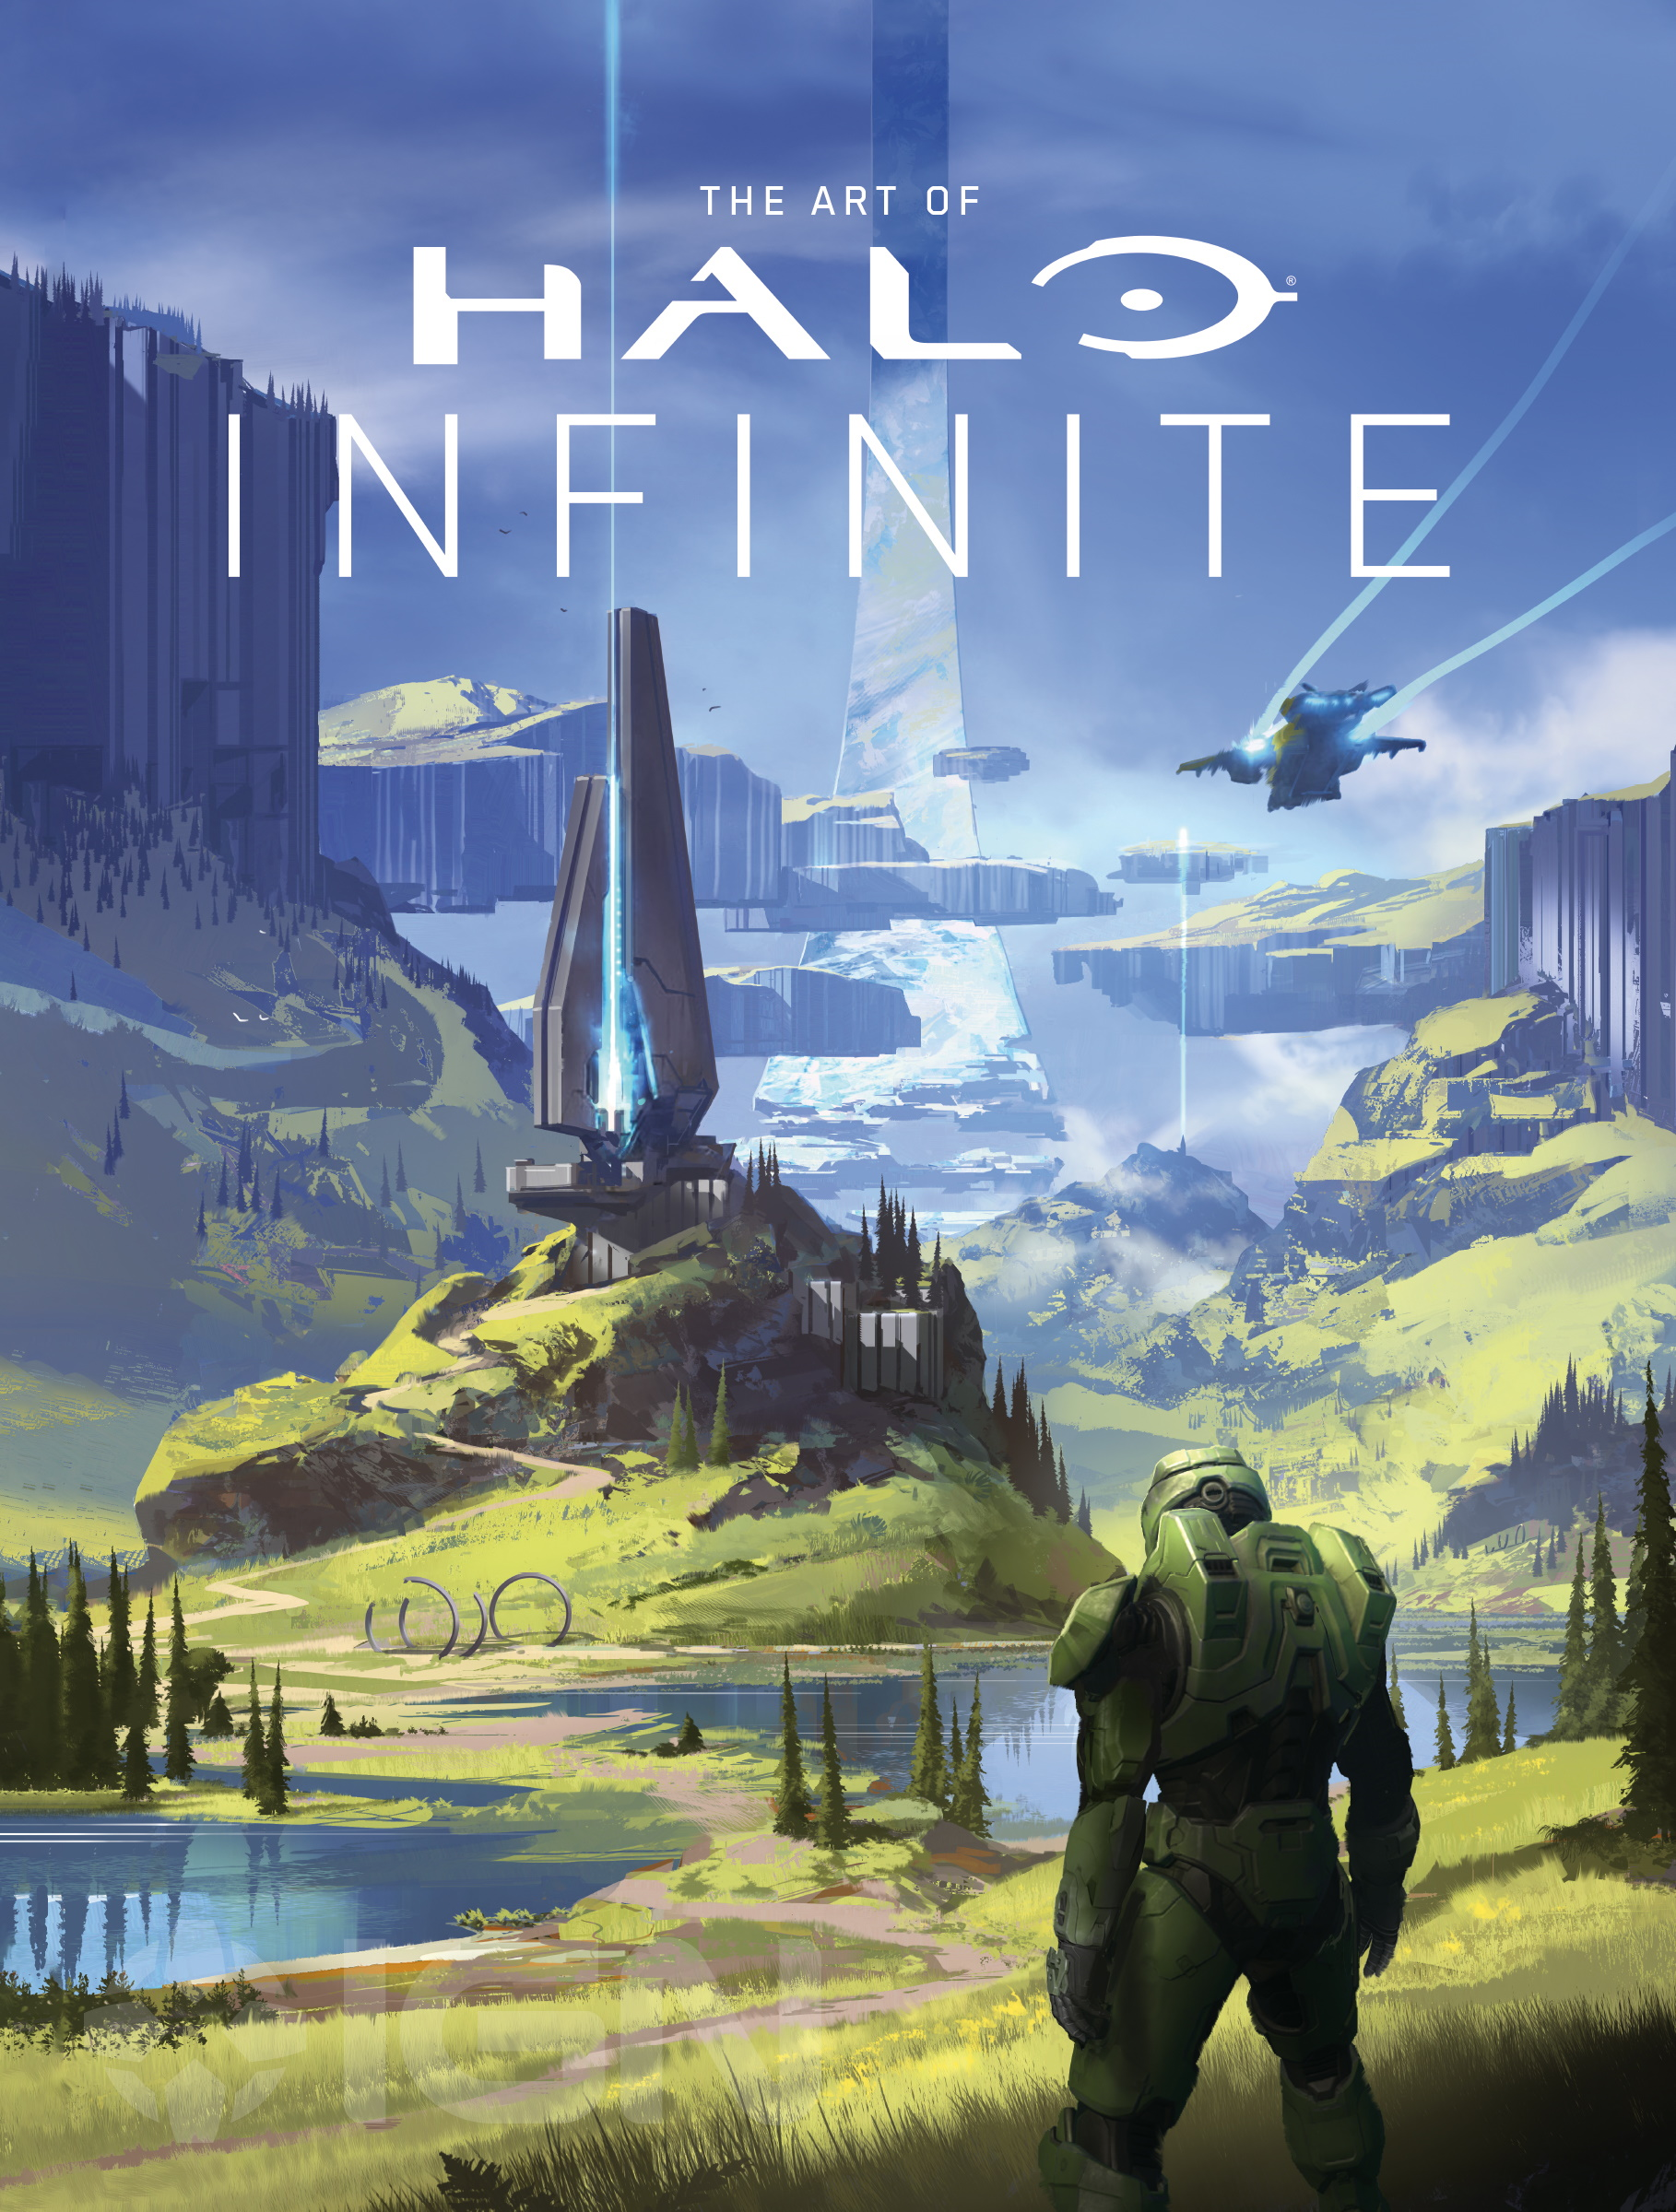 The-Art-of-Halo-Infinite-Exclusive-Cover-Reveal.05.jpeg